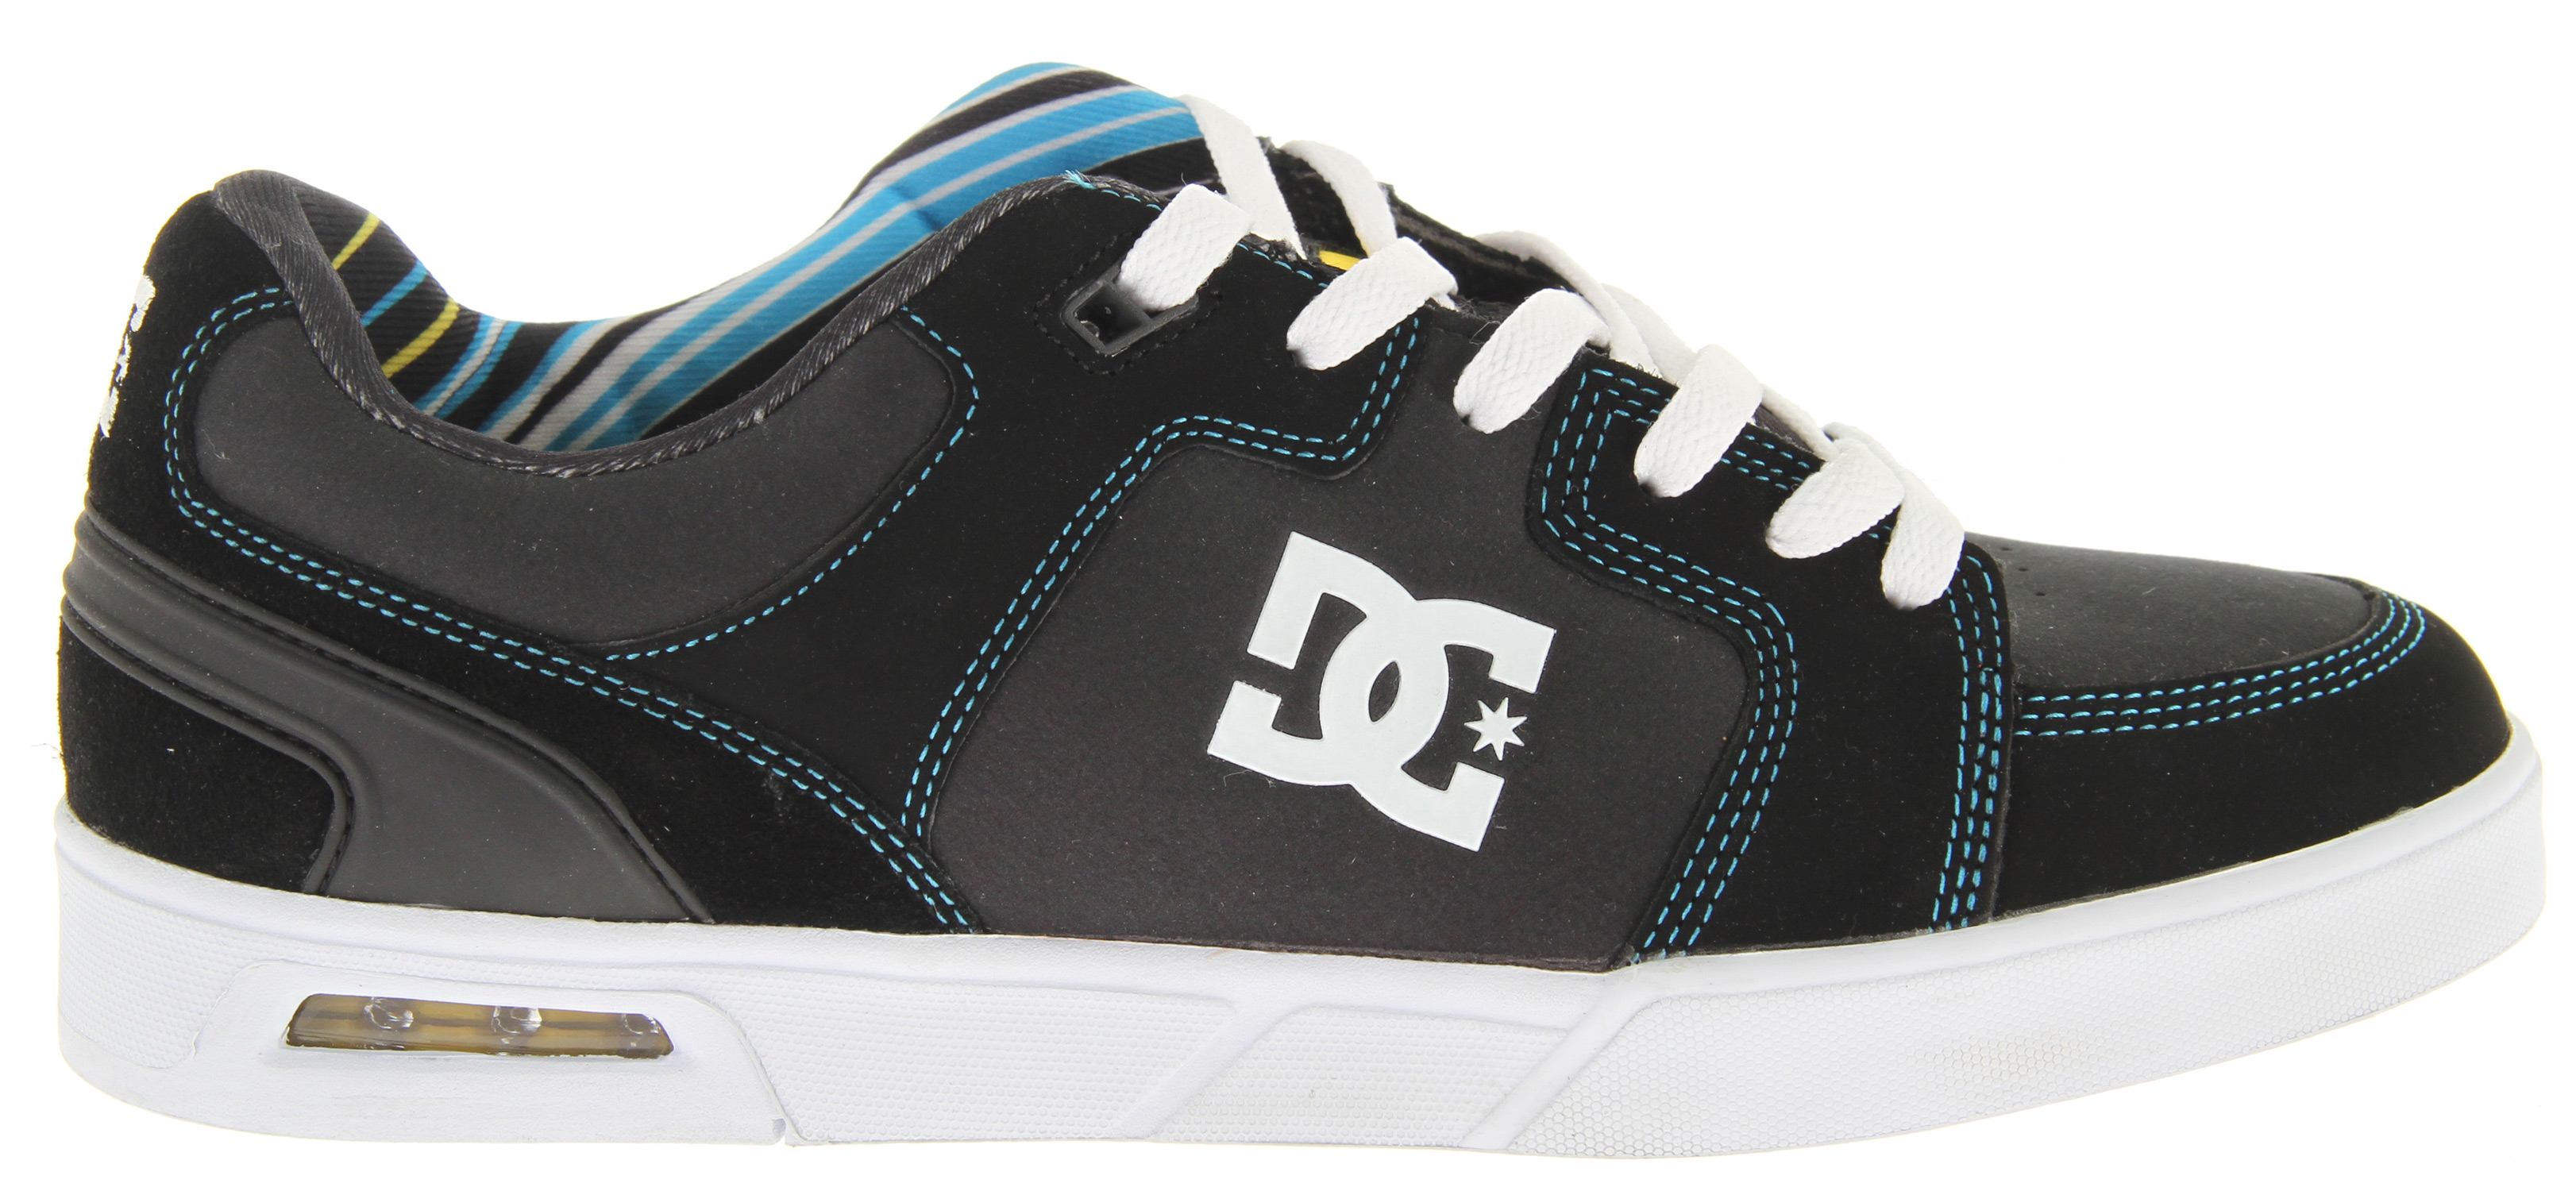 Skateboard Key Features of the DC Monty Na Skate Shoes: Clean cupsole construction with visible heel airbag Traditional skate paneling in the upper Foam padded tongue and collar for added comfort Molded heel counter for support and style - $48.95